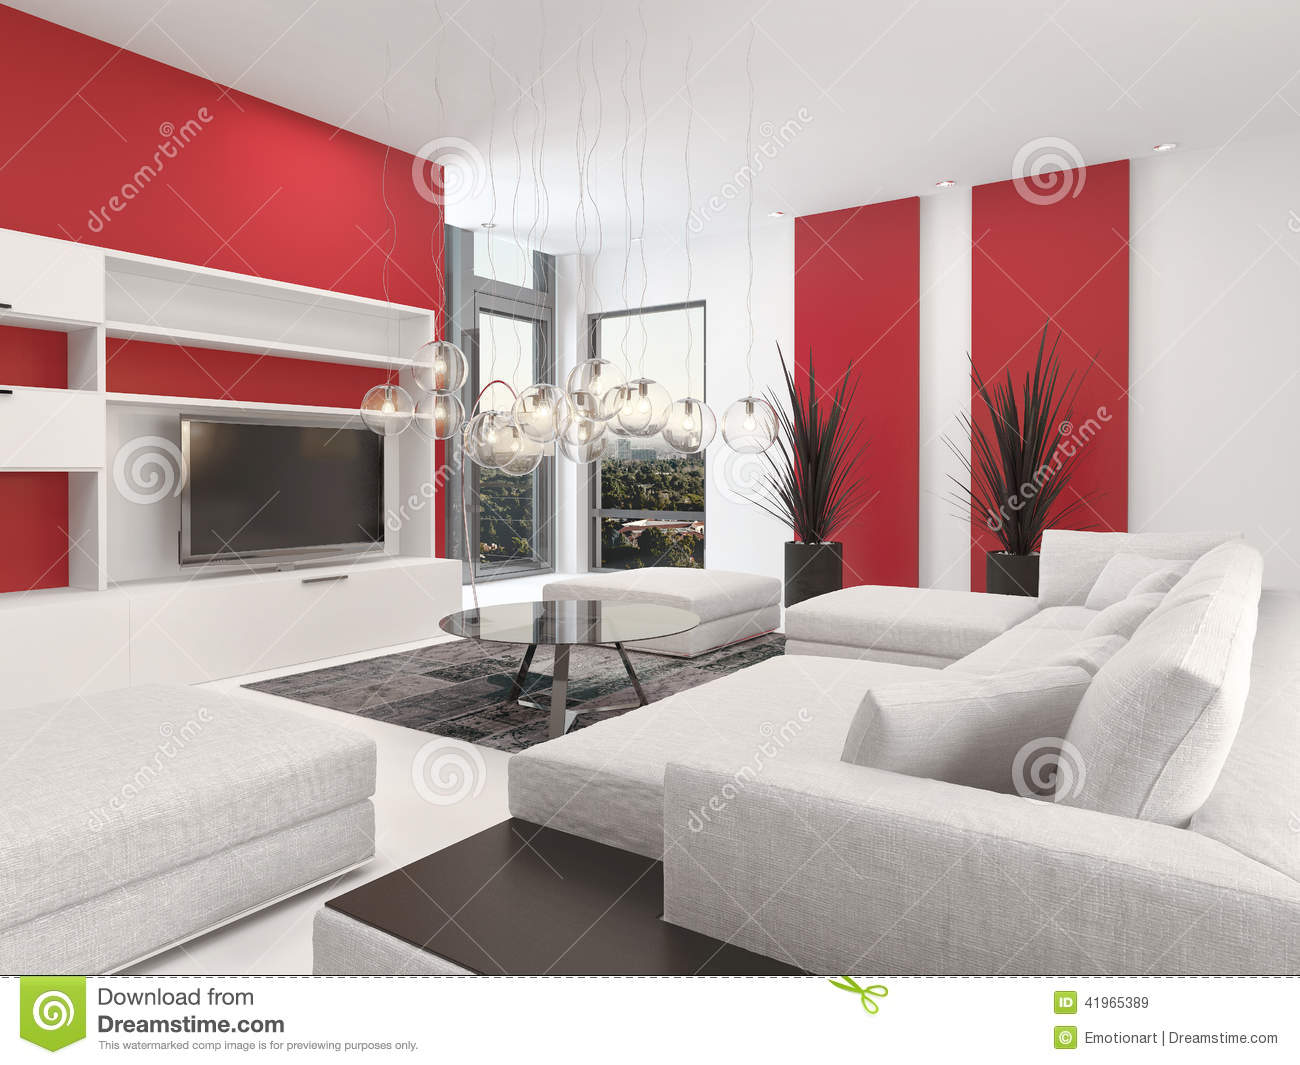 Contemporary living room interior with red accents stock for Modern lounge decor